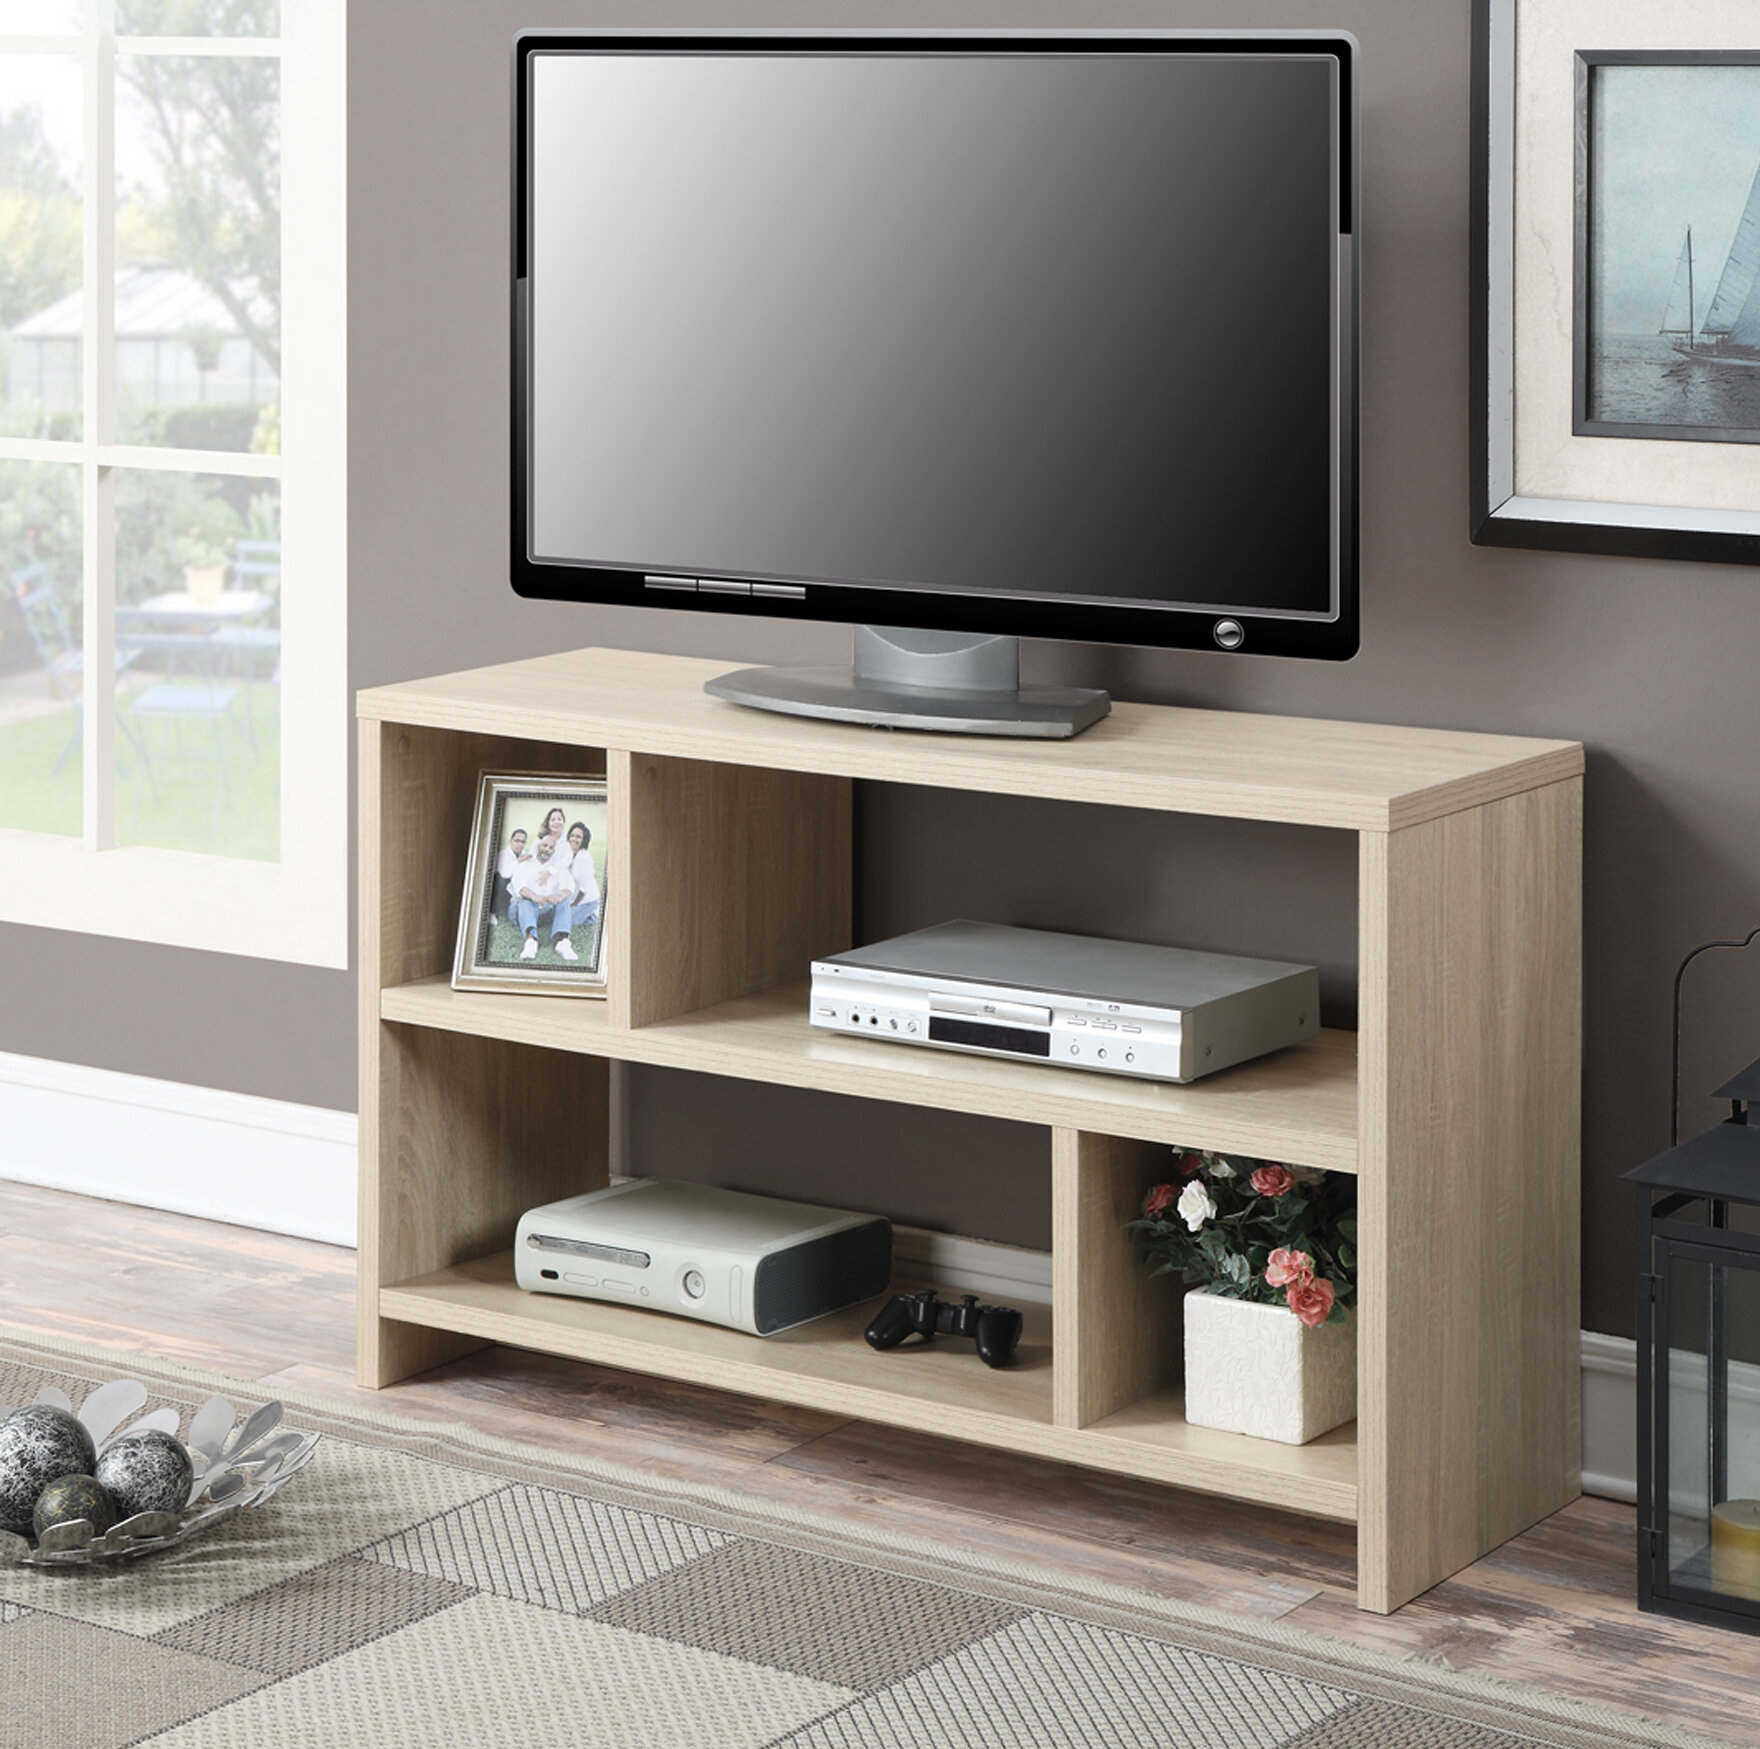 """D'aulizio Tv Stand For Tvs Up To 43"""" With Regard To Ericka Tv Stands For Tvs Up To 42"""" (Gallery 2 of 30)"""